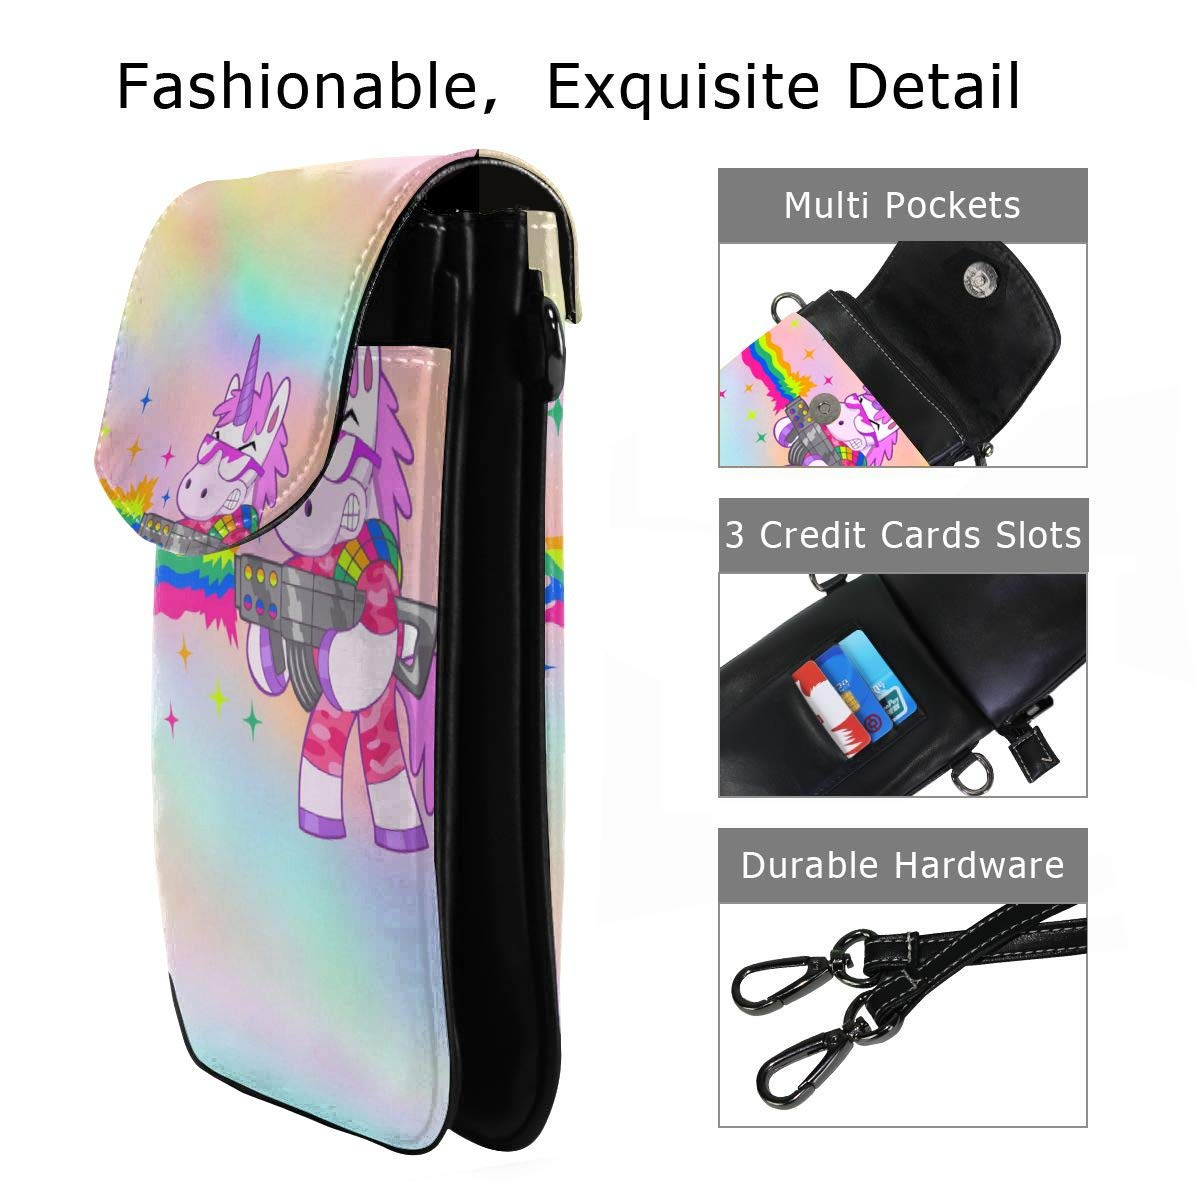 Small Cell Phone Purse Unicorn Kill Crossbody Bags with Shoulder Strap Coin Purse Wallet for Women,Girls